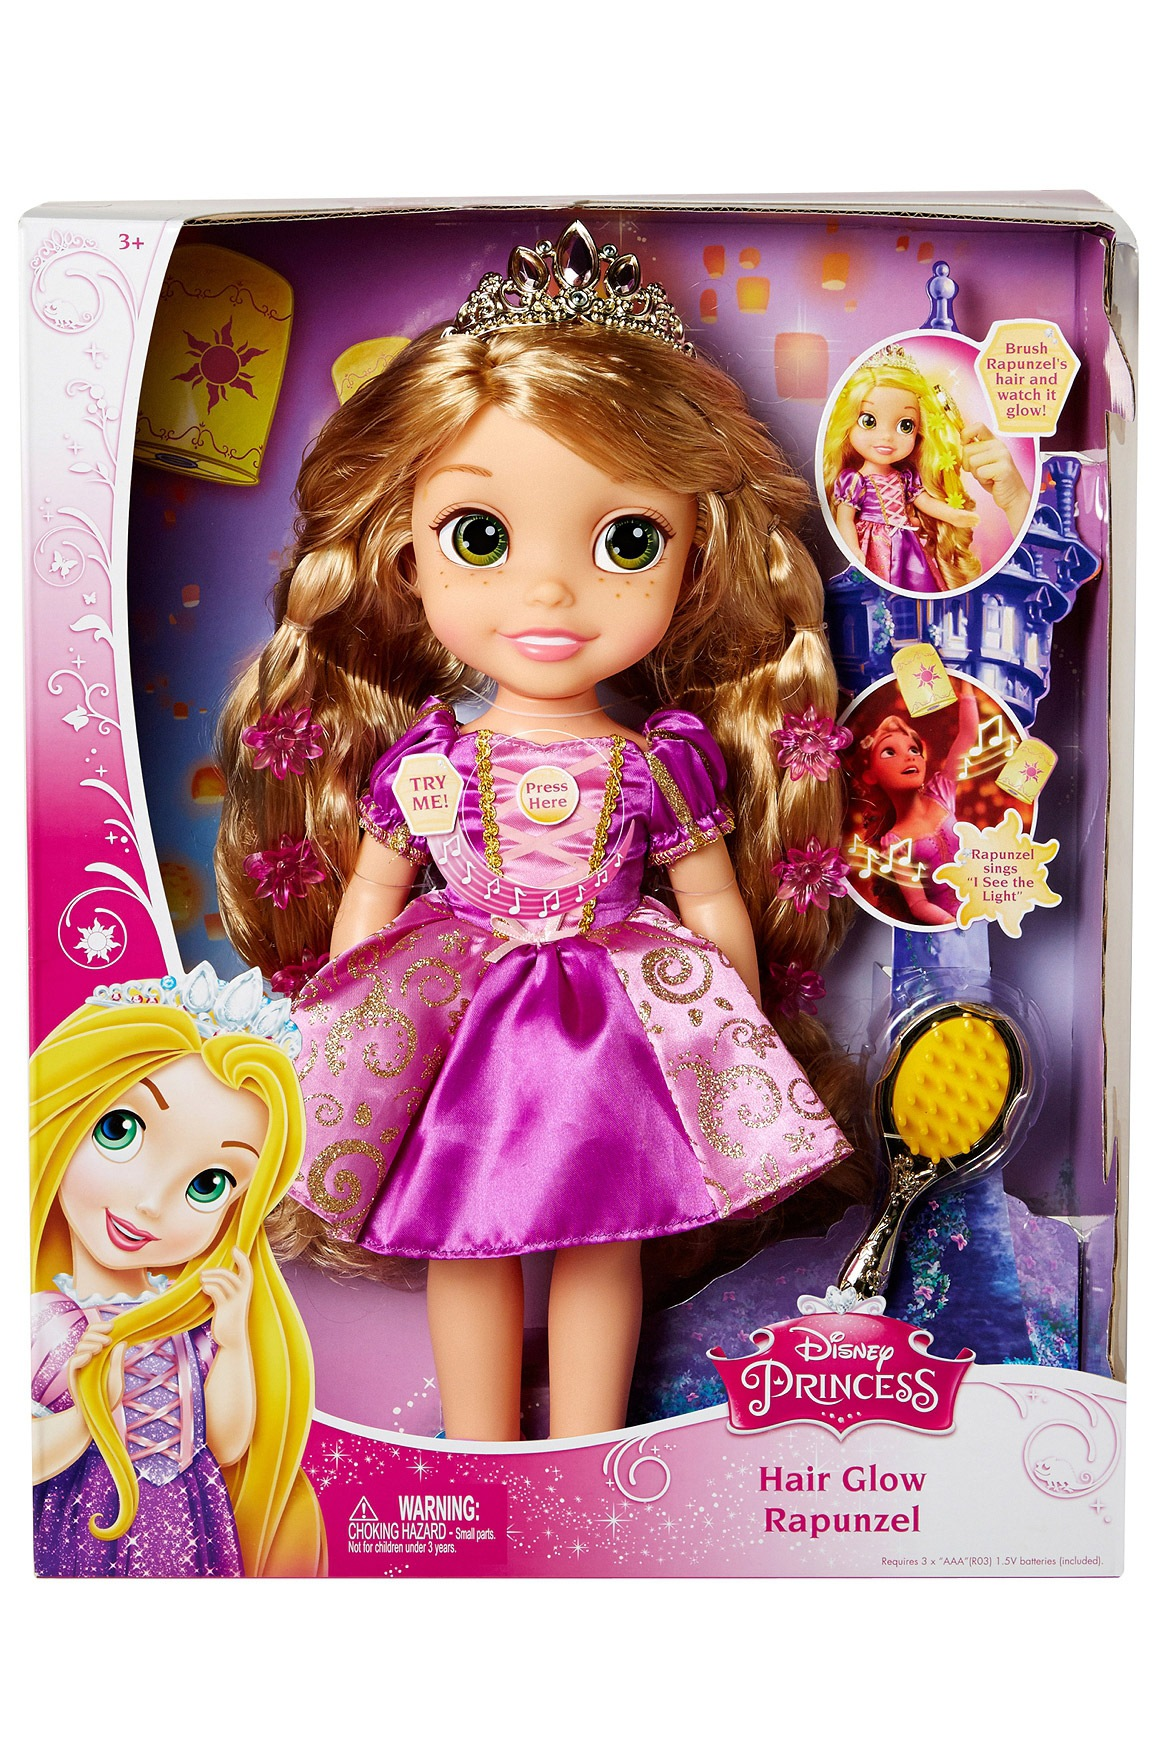 Disney Princess Magic Hair Glow Rapunzel Myer Online